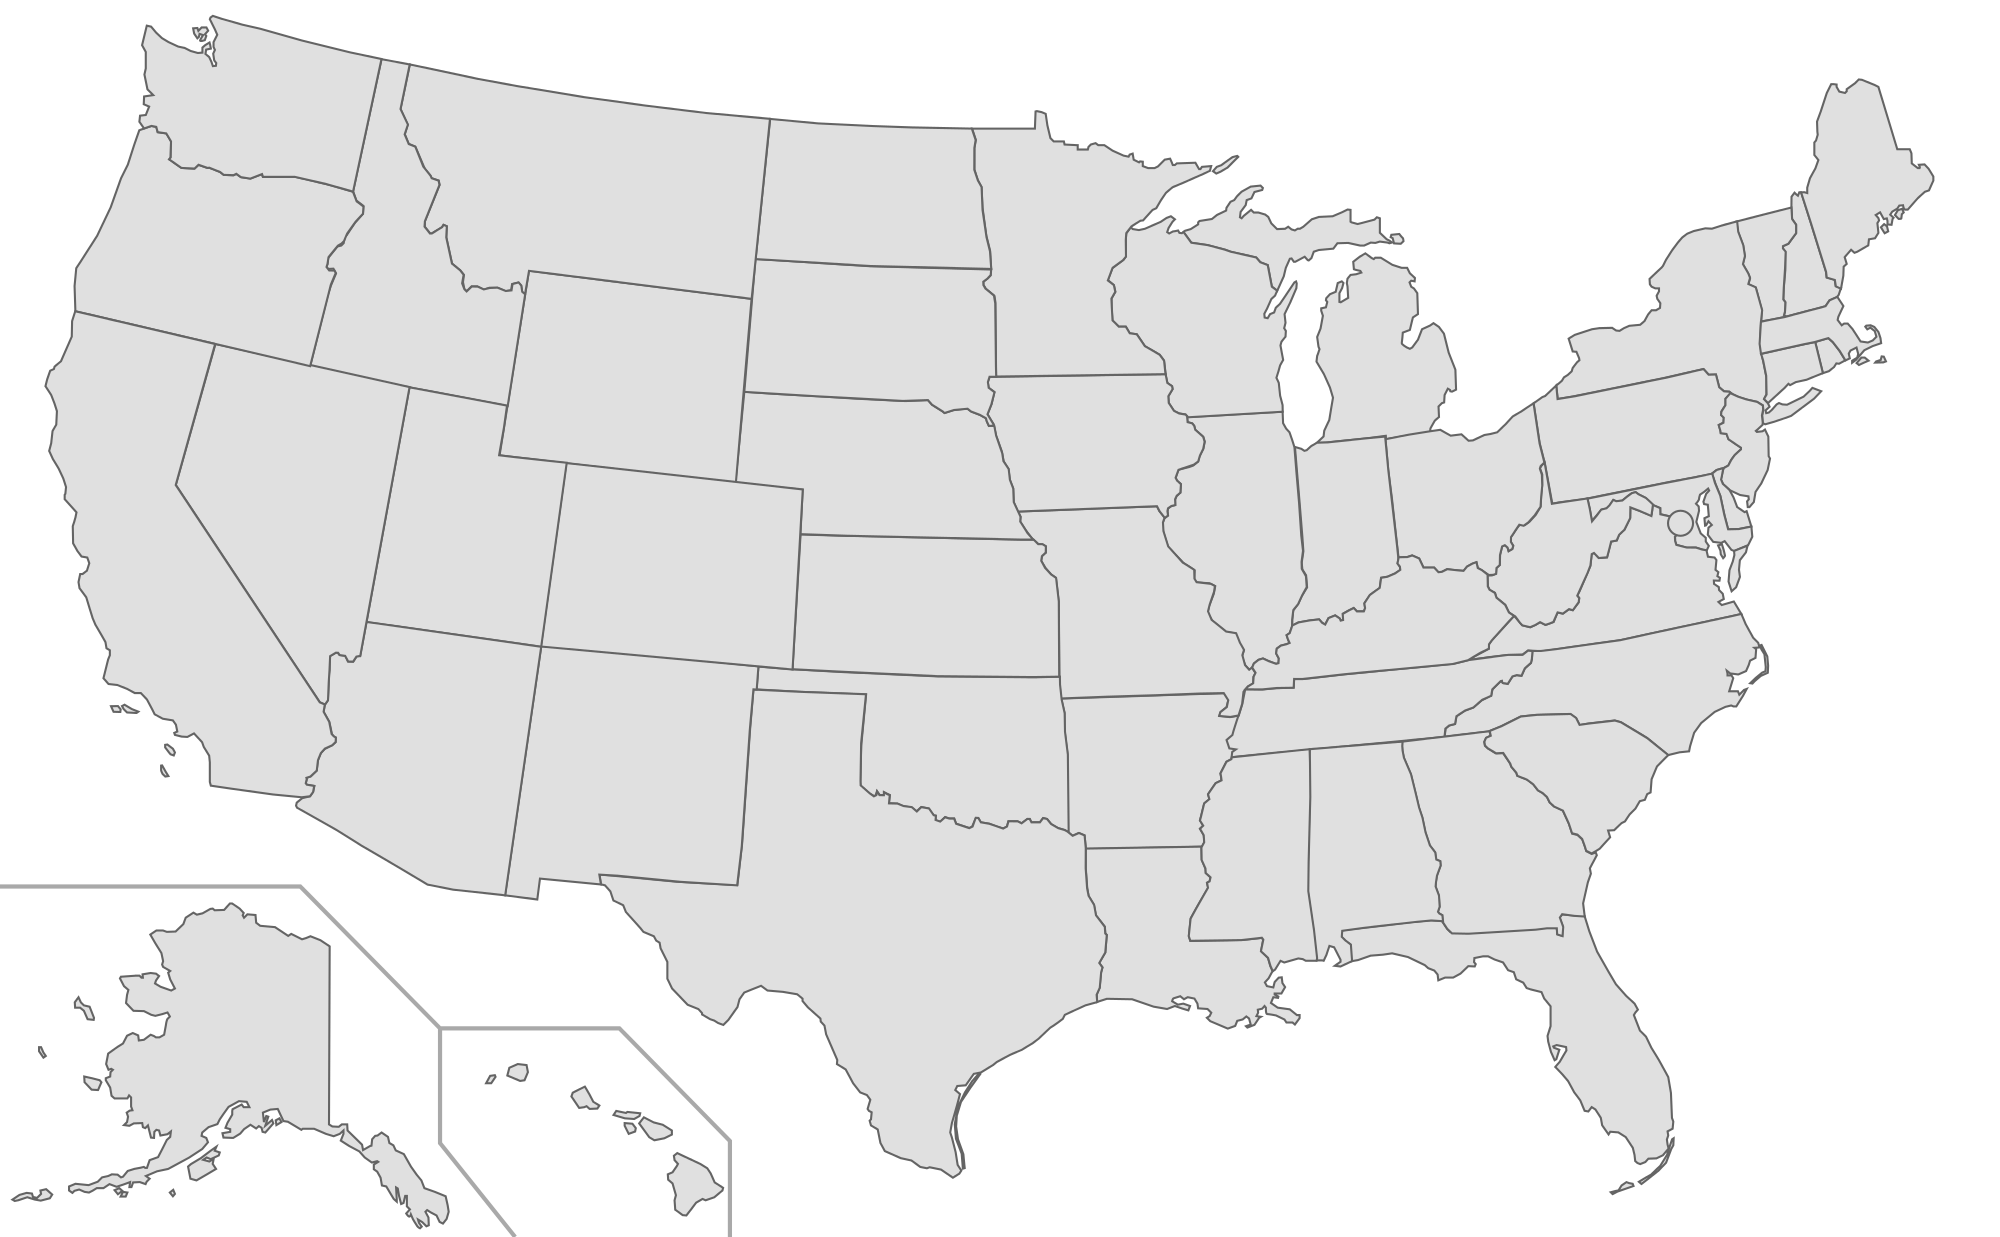 png freeuse download Map clipart map united states. Us transpatent cdoovision com.